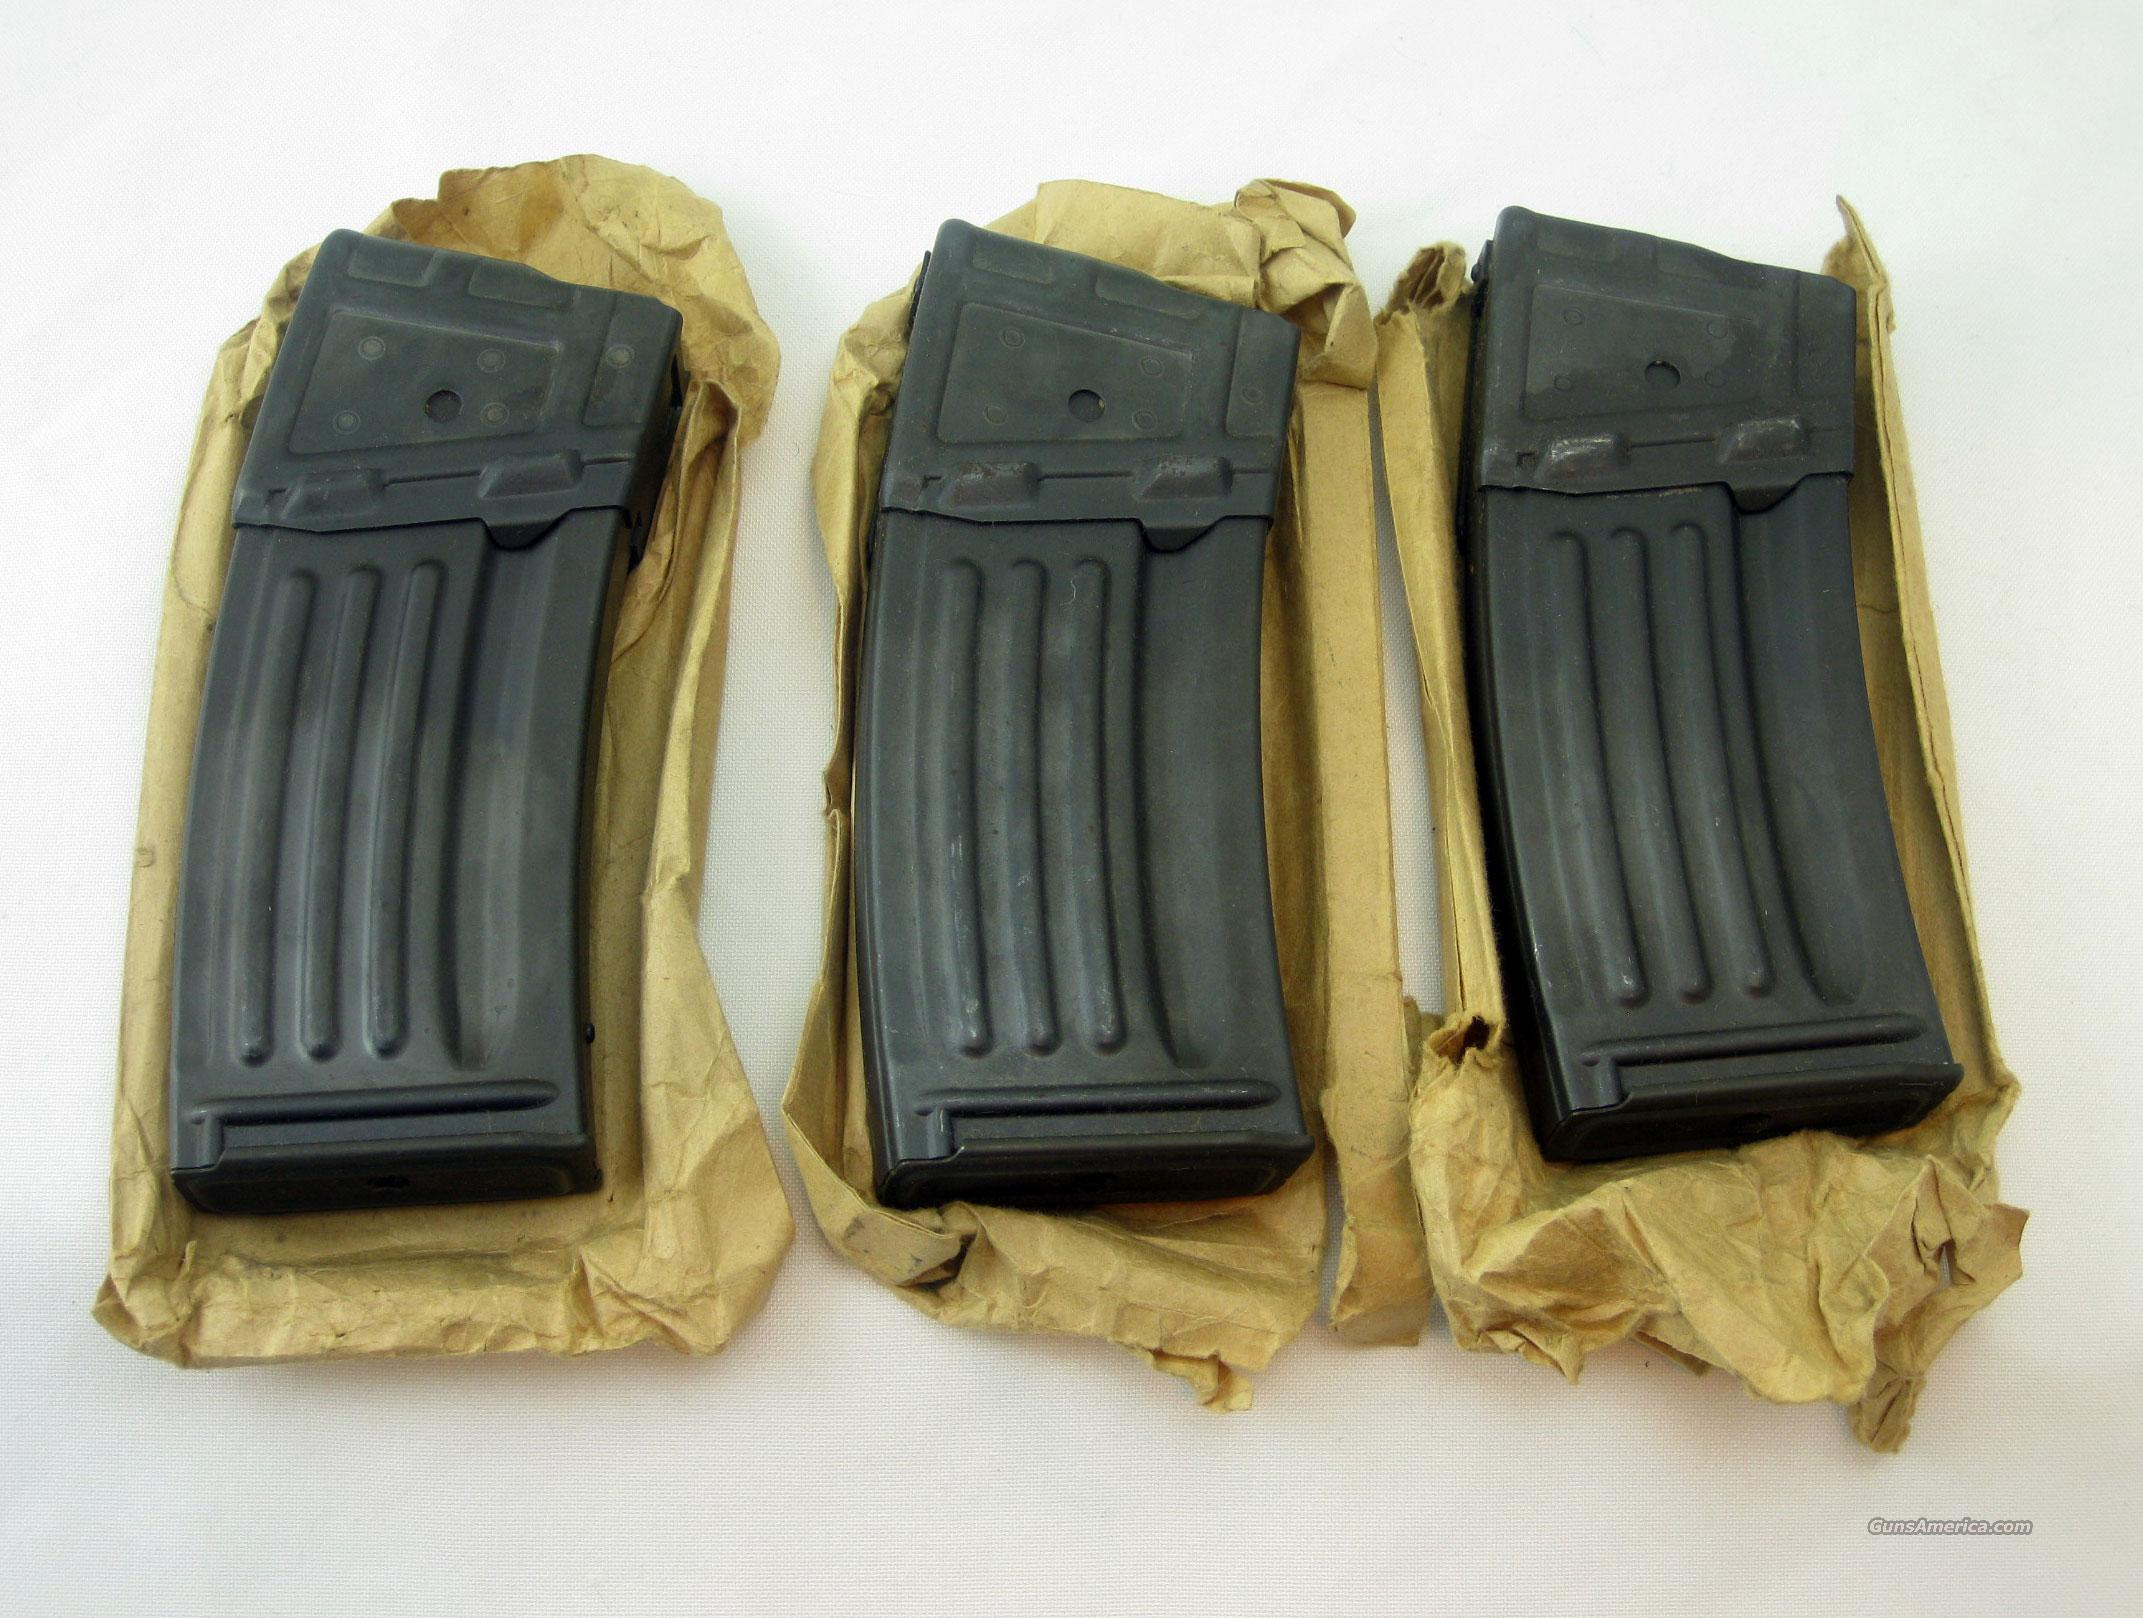 Hk Factory 93 25rd Mag   Non-Guns > Magazines & Clips > Rifle Magazines > HK/CETME